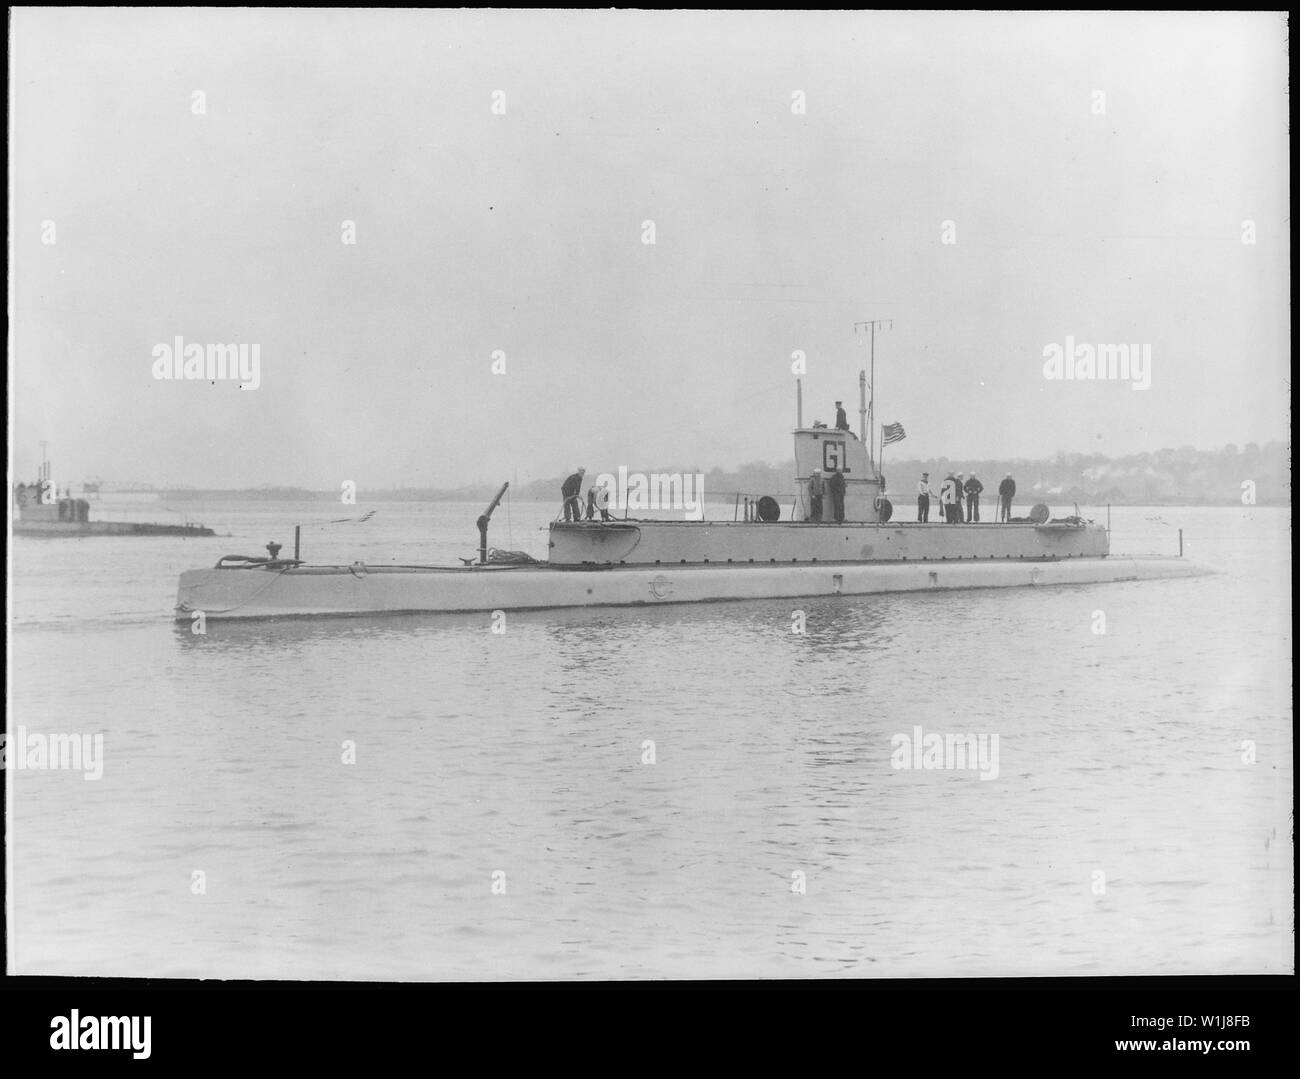 Seal (SS19 1/2), renamed G1. Port bow, crew on deck, 1912 - Stock Image